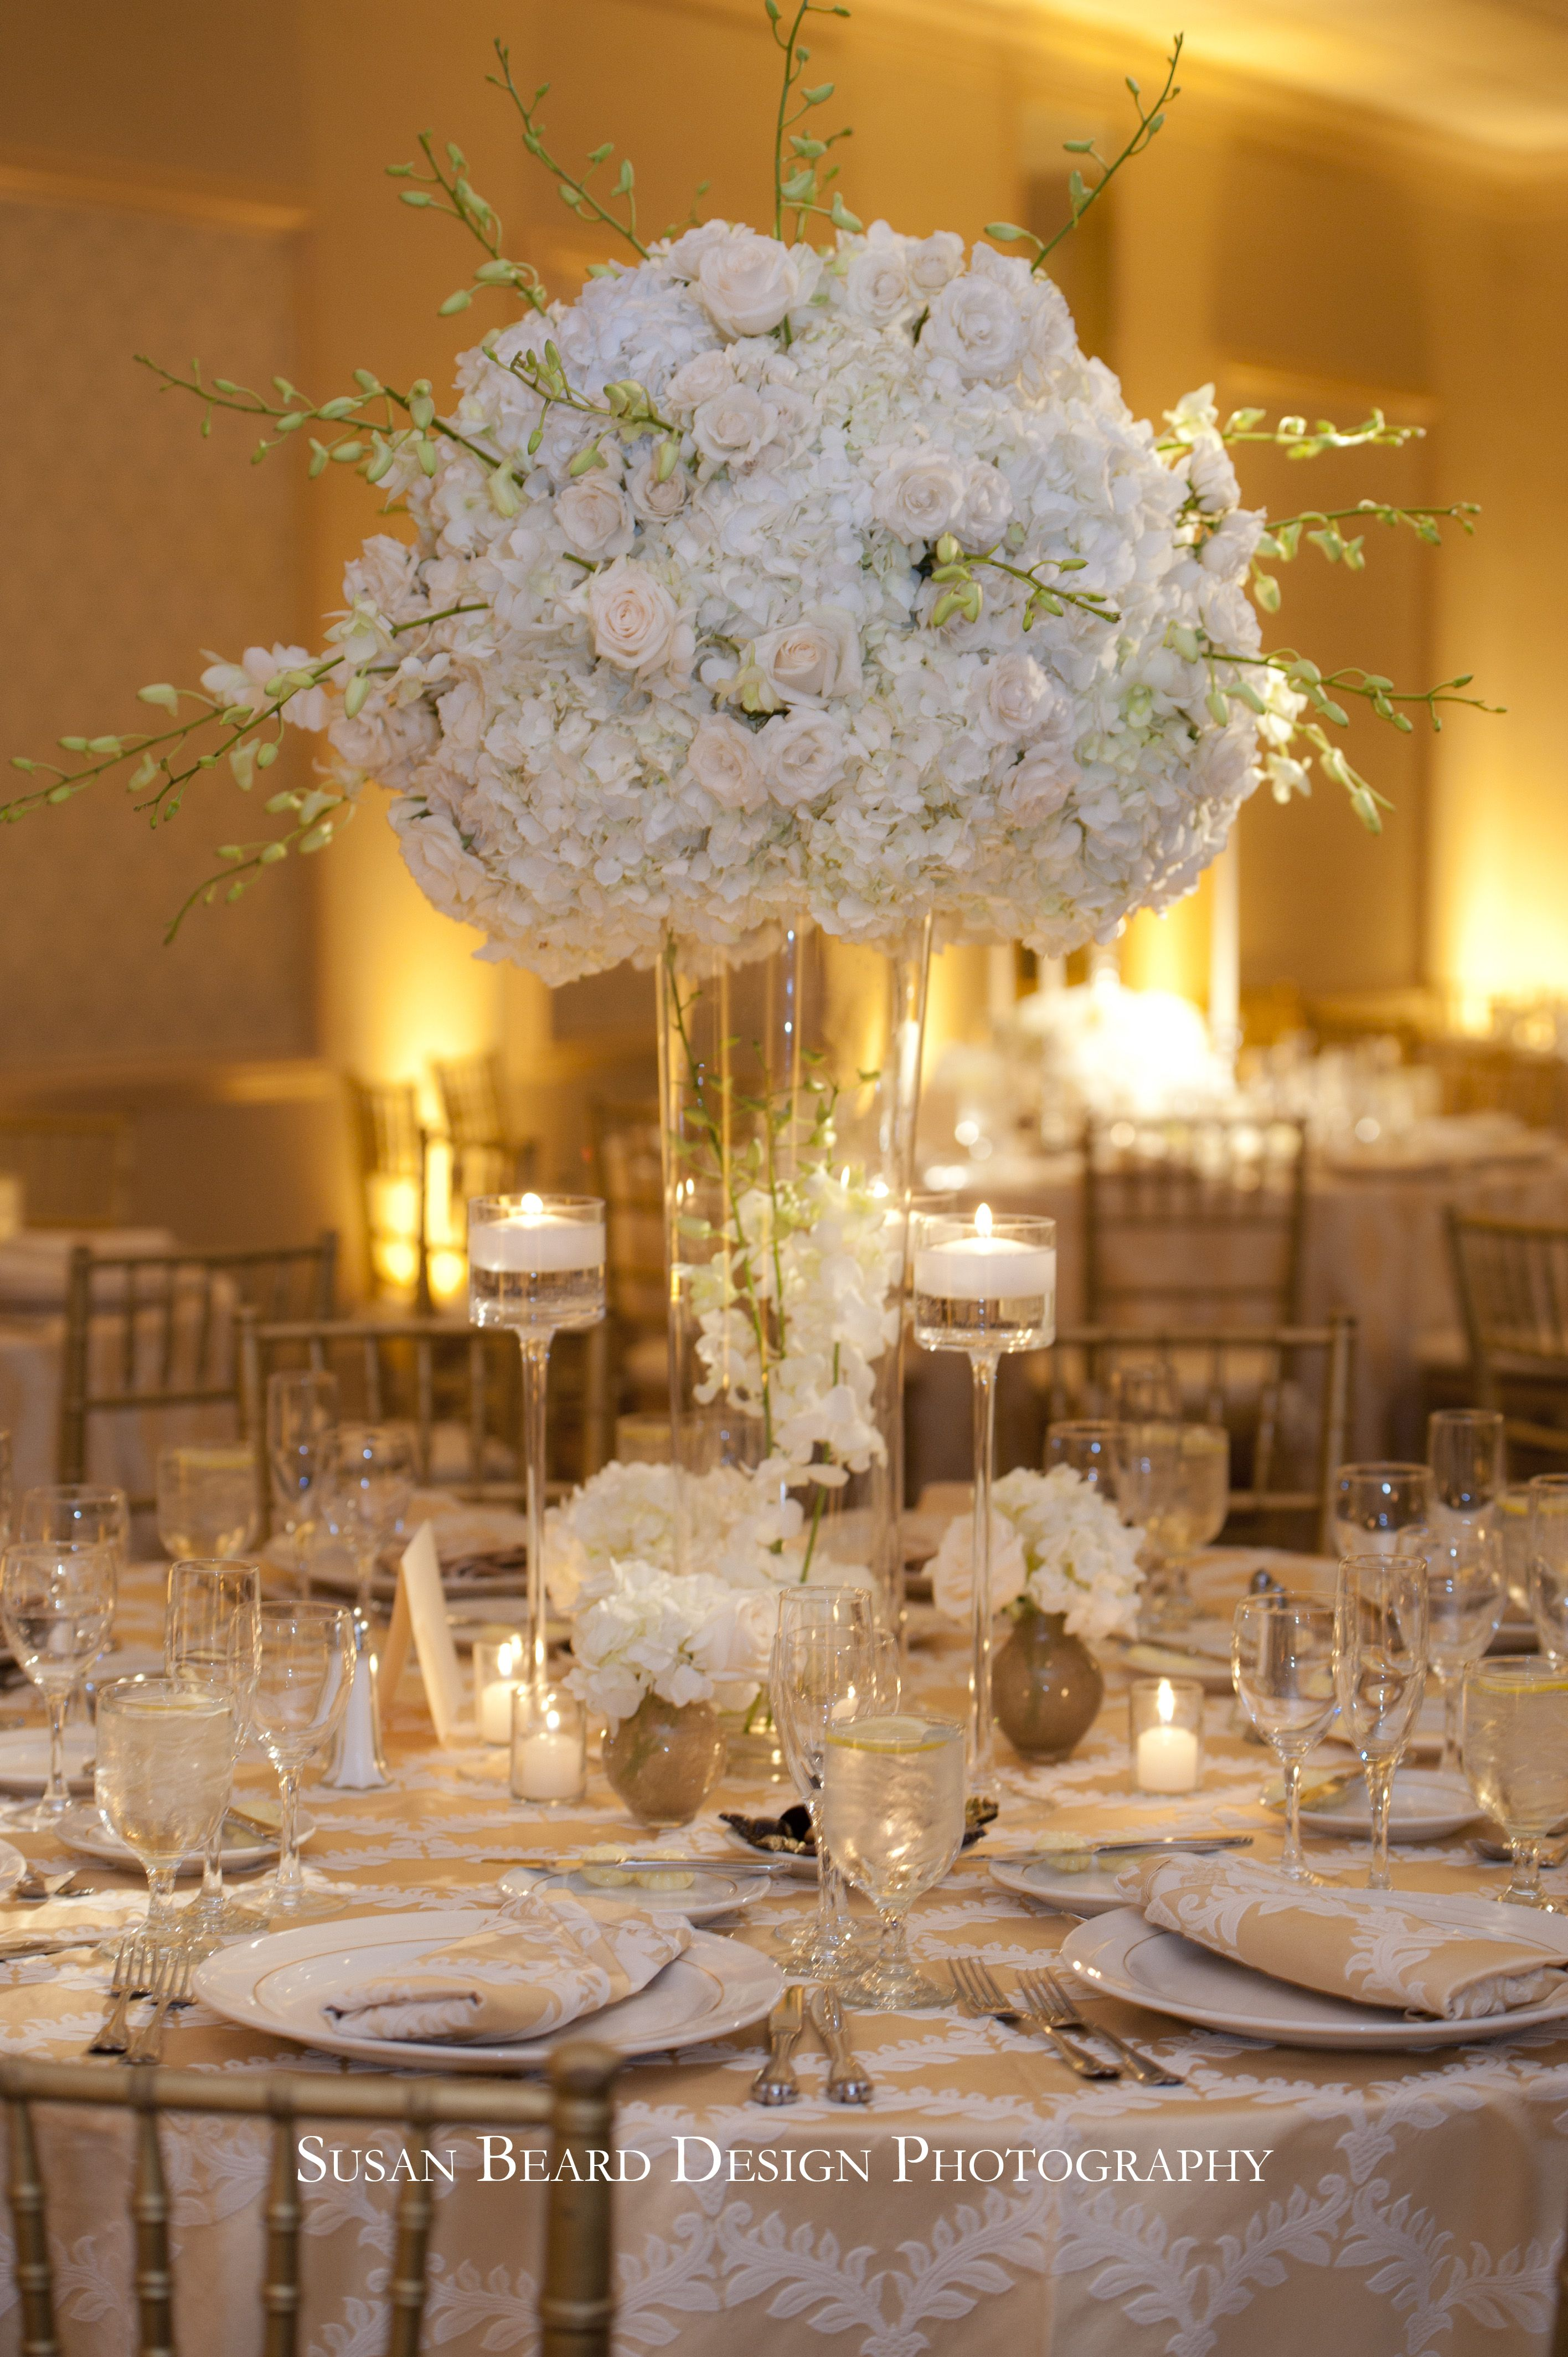 White hydrangea white roses and white orchids